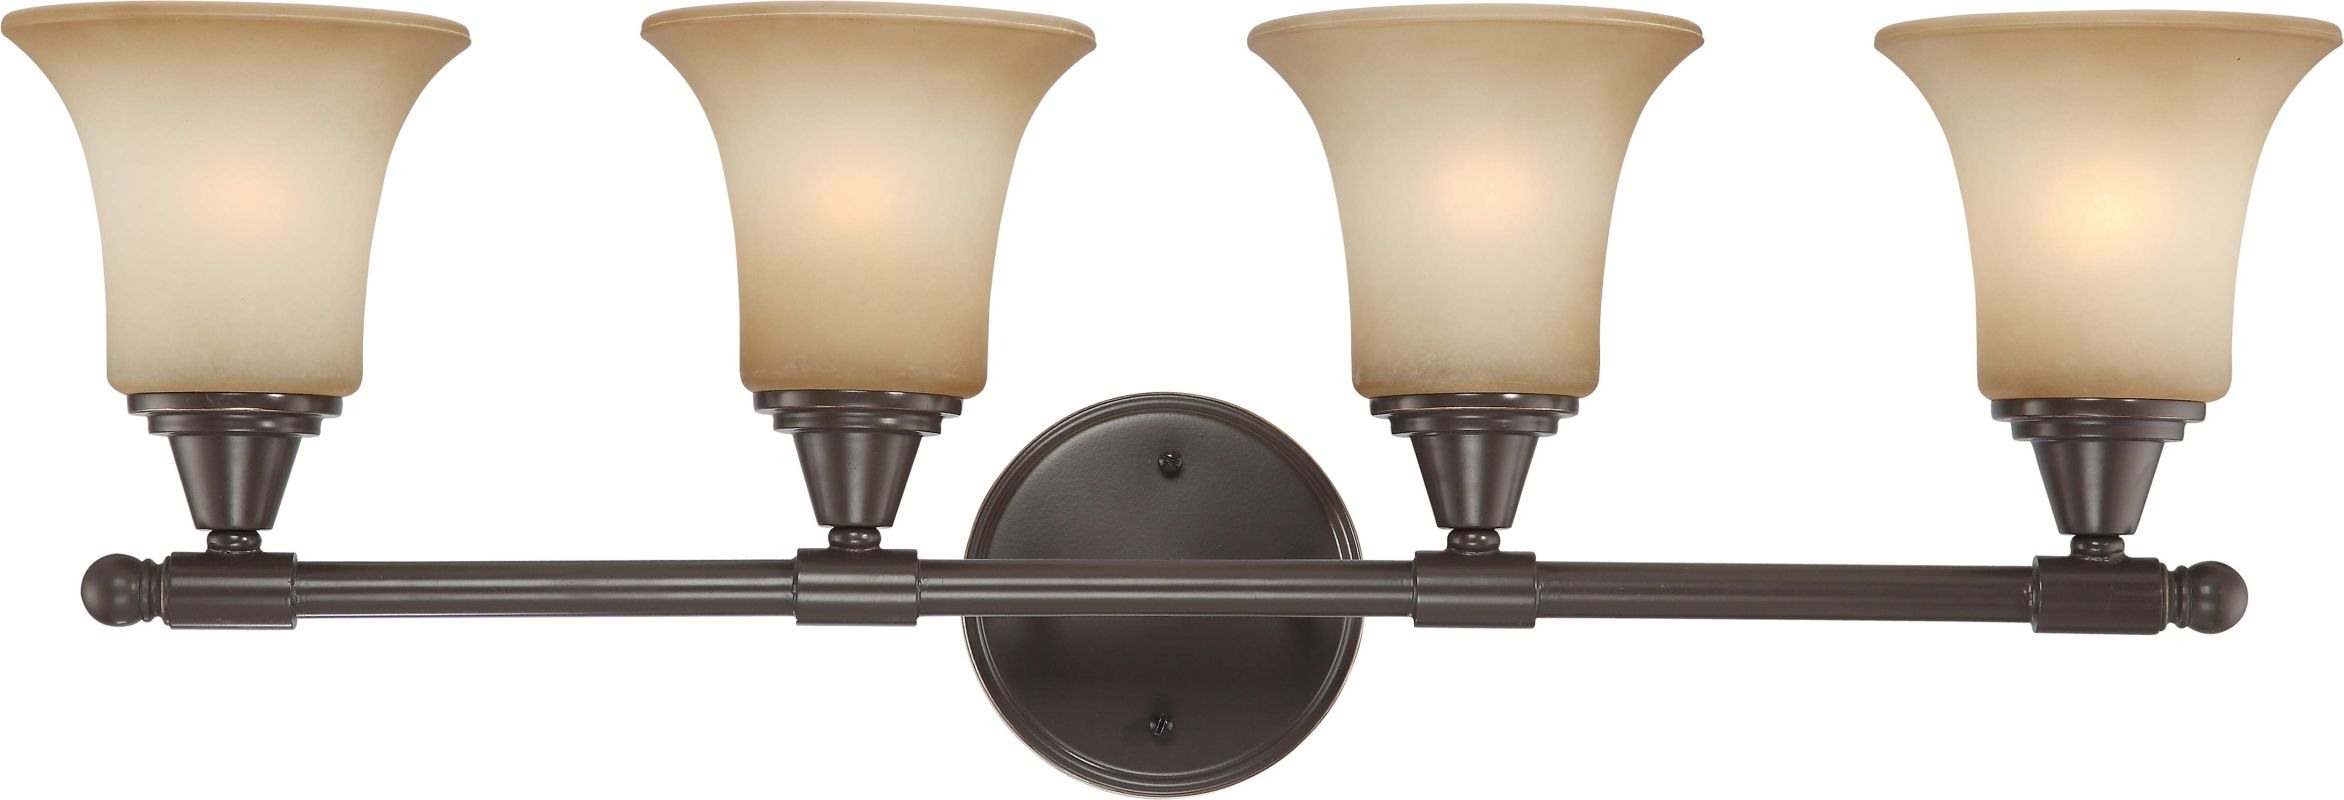 Nuvo Lighting 60/4164 Surrey Four Light Bathroom Fixture with Auburn